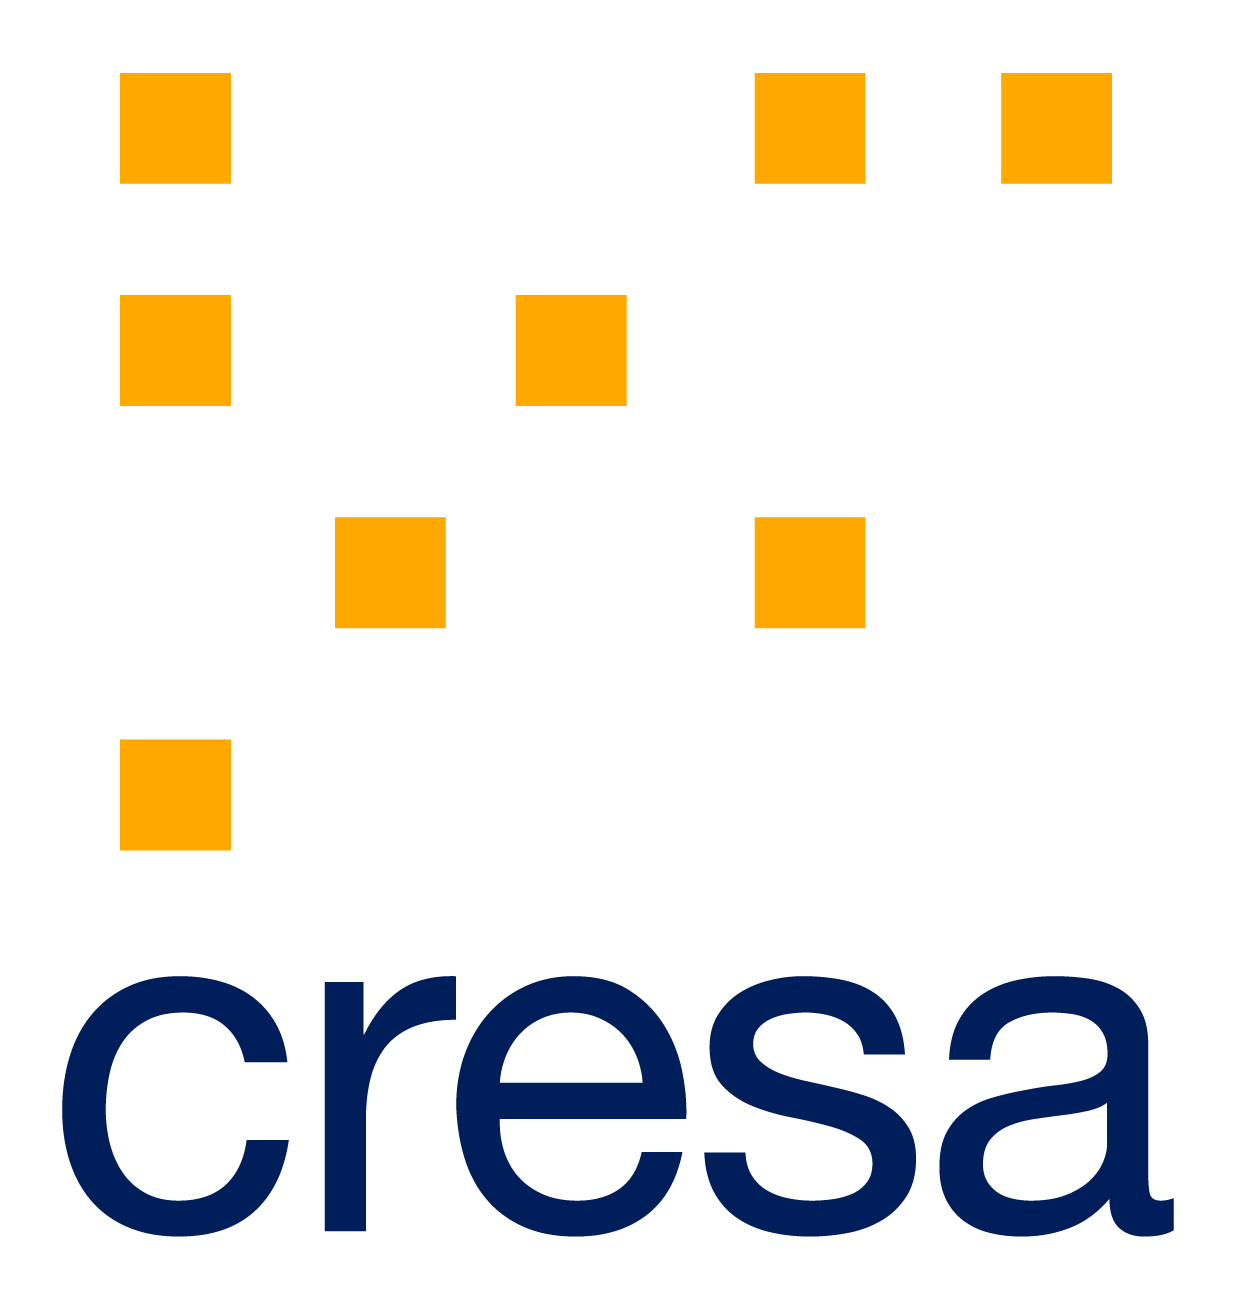 https://www.nawboindy.org/wp-content/uploads/Cresa_Logo-Primary-Tall-1.png